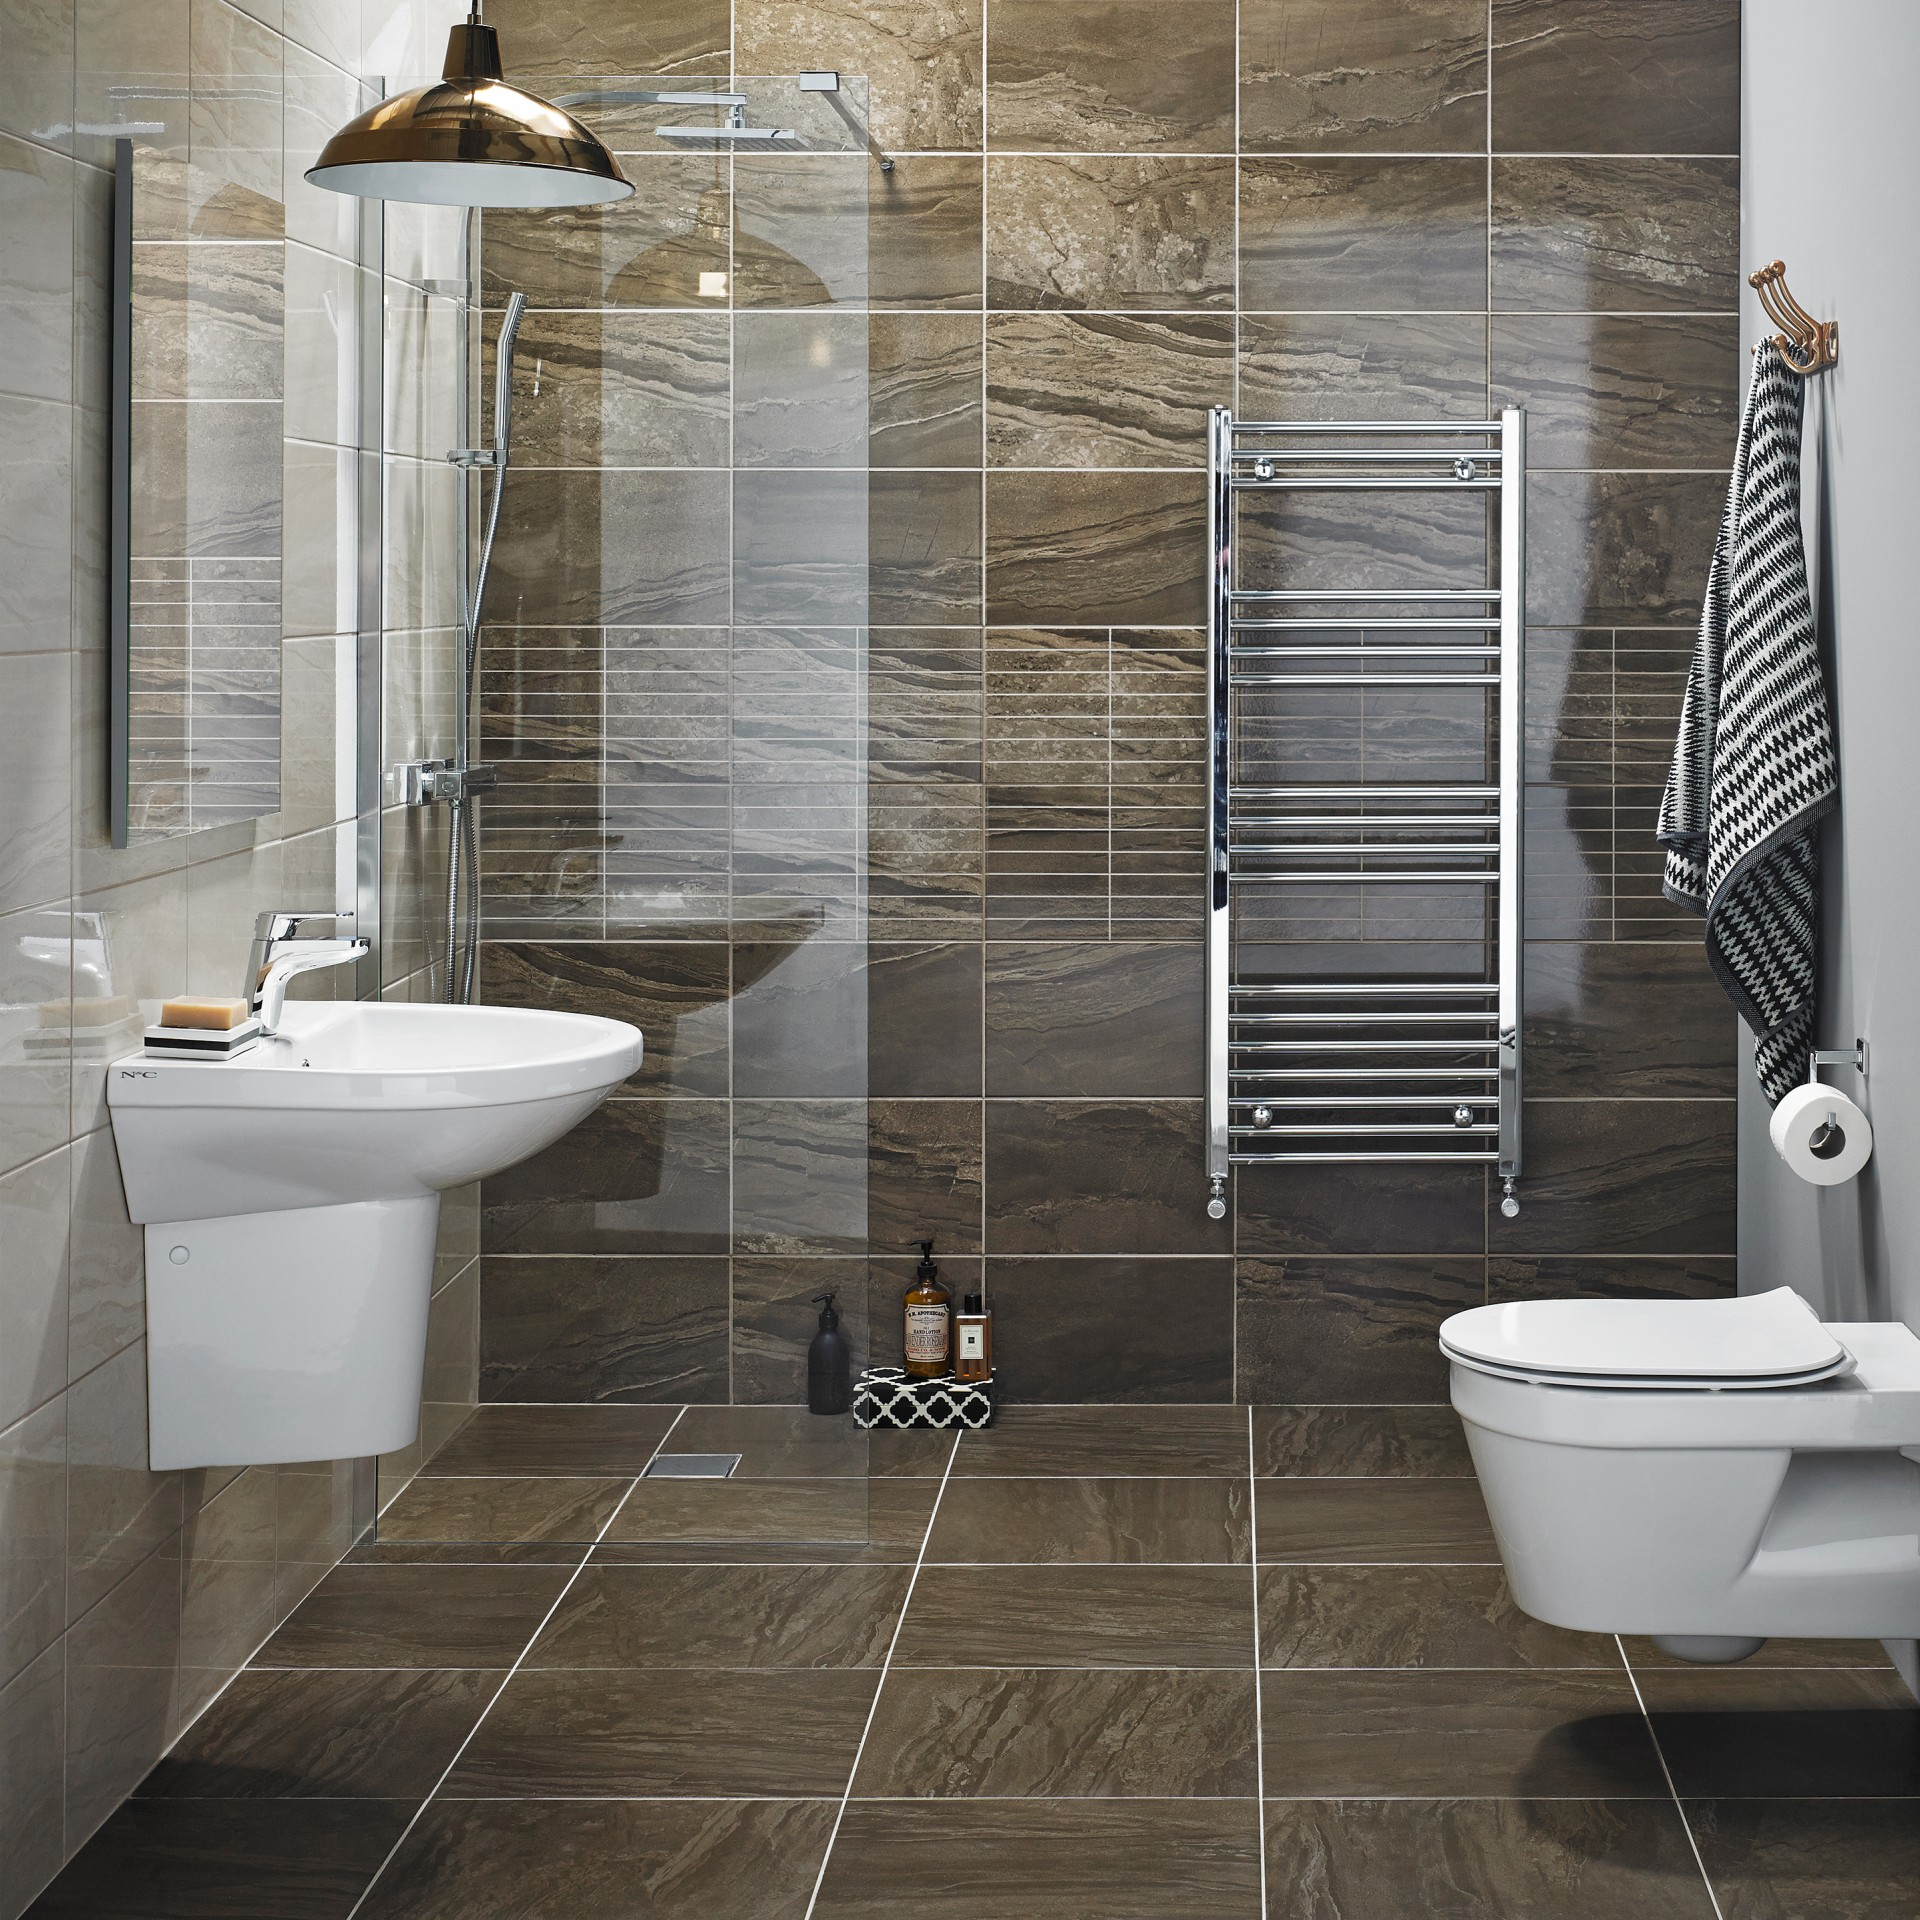 N c tiles and bathrooms - Smart tiles chez leroy merlin ...